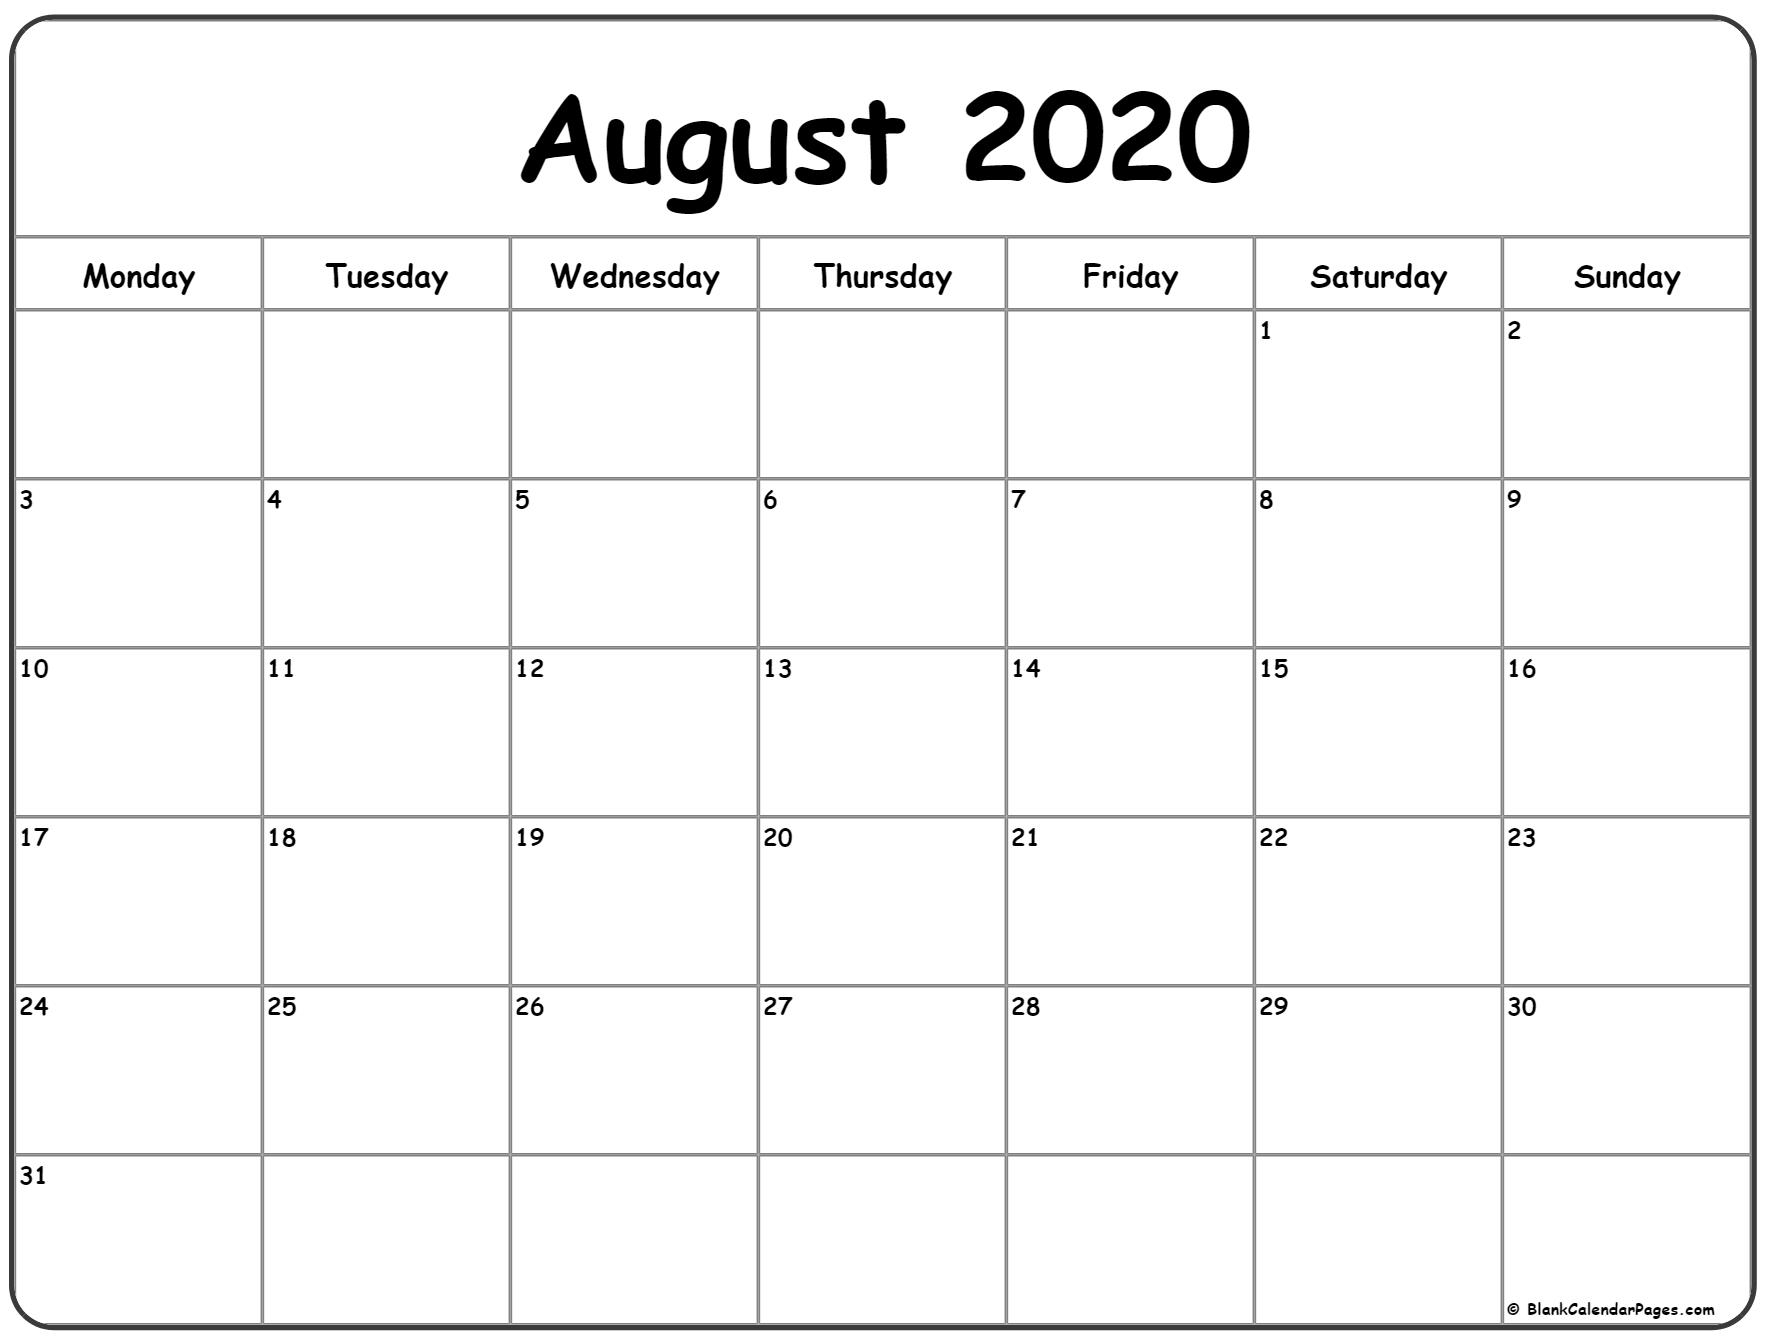 August 2020 Monday Calendar | Monday To Sunday intended for Monday To Friday Calendar